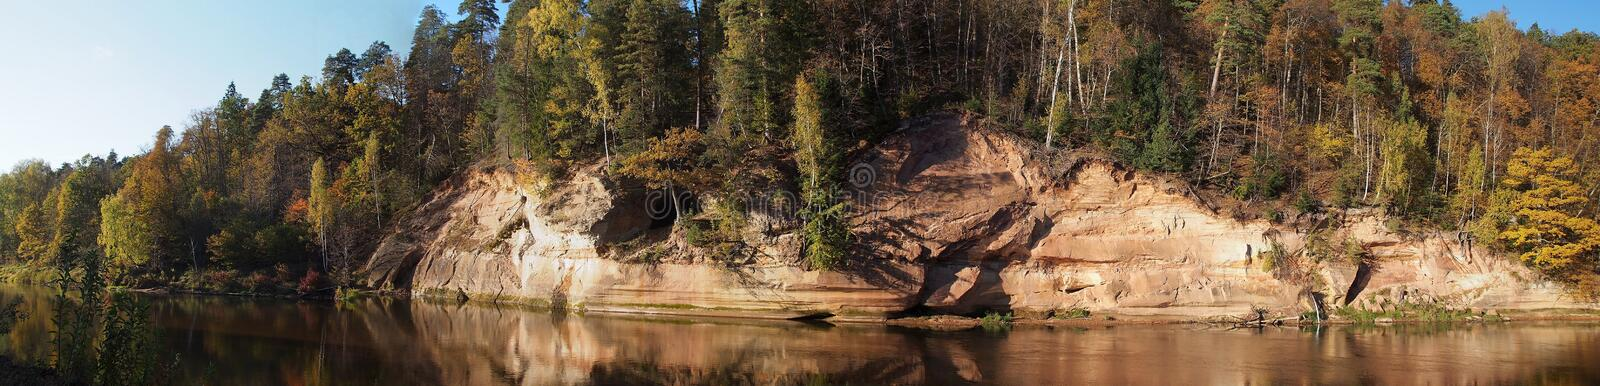 Cliff and River stock image